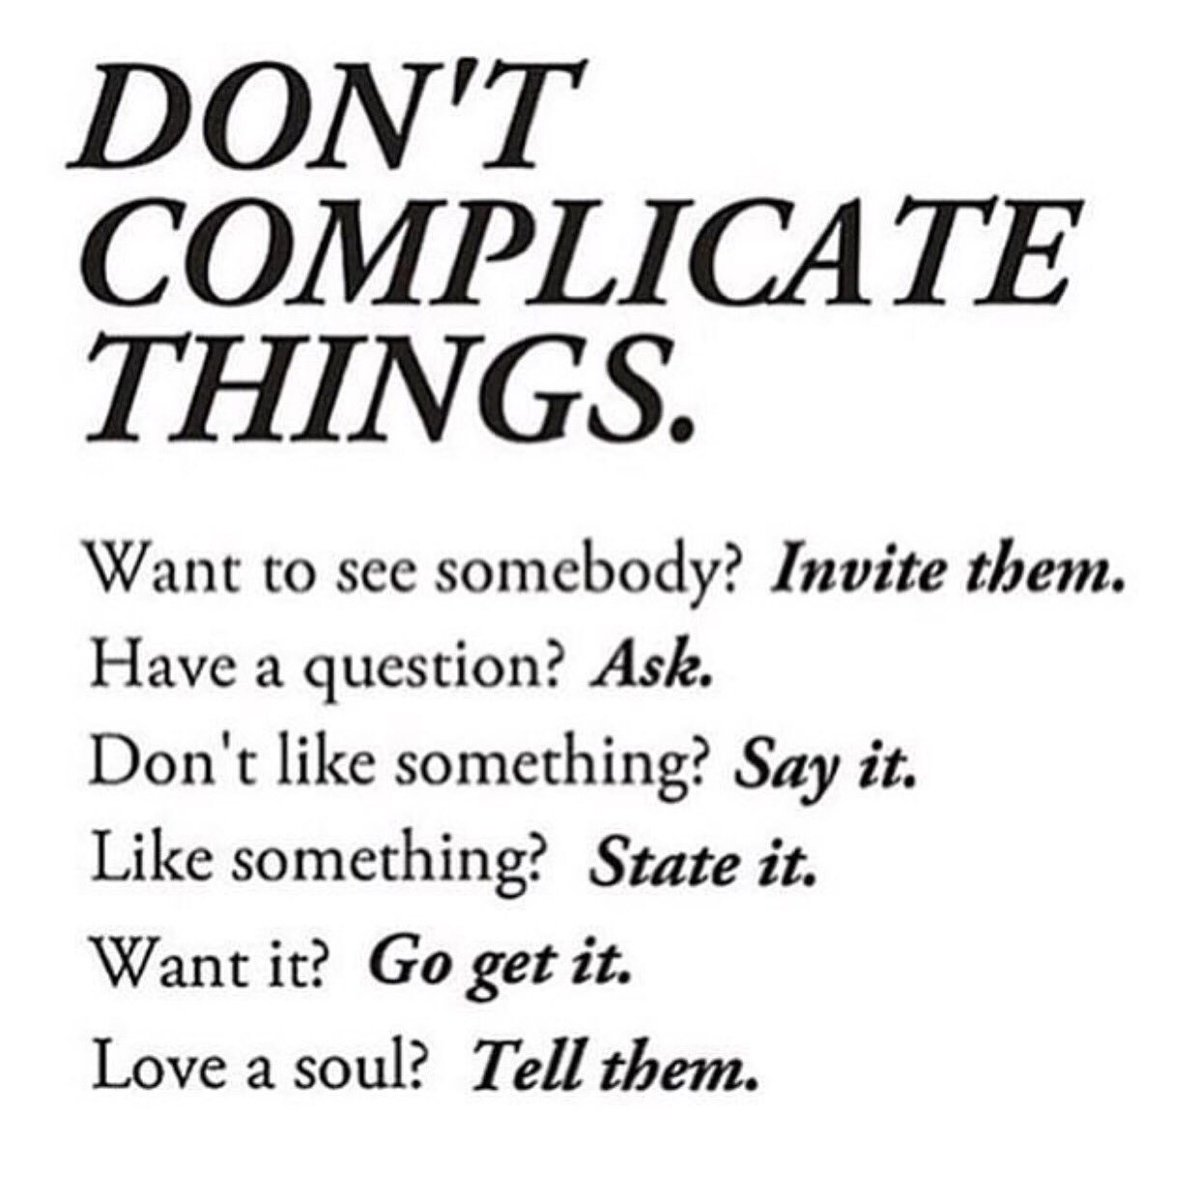 Don't Complicate Things! https://t.co/njvseDSc85